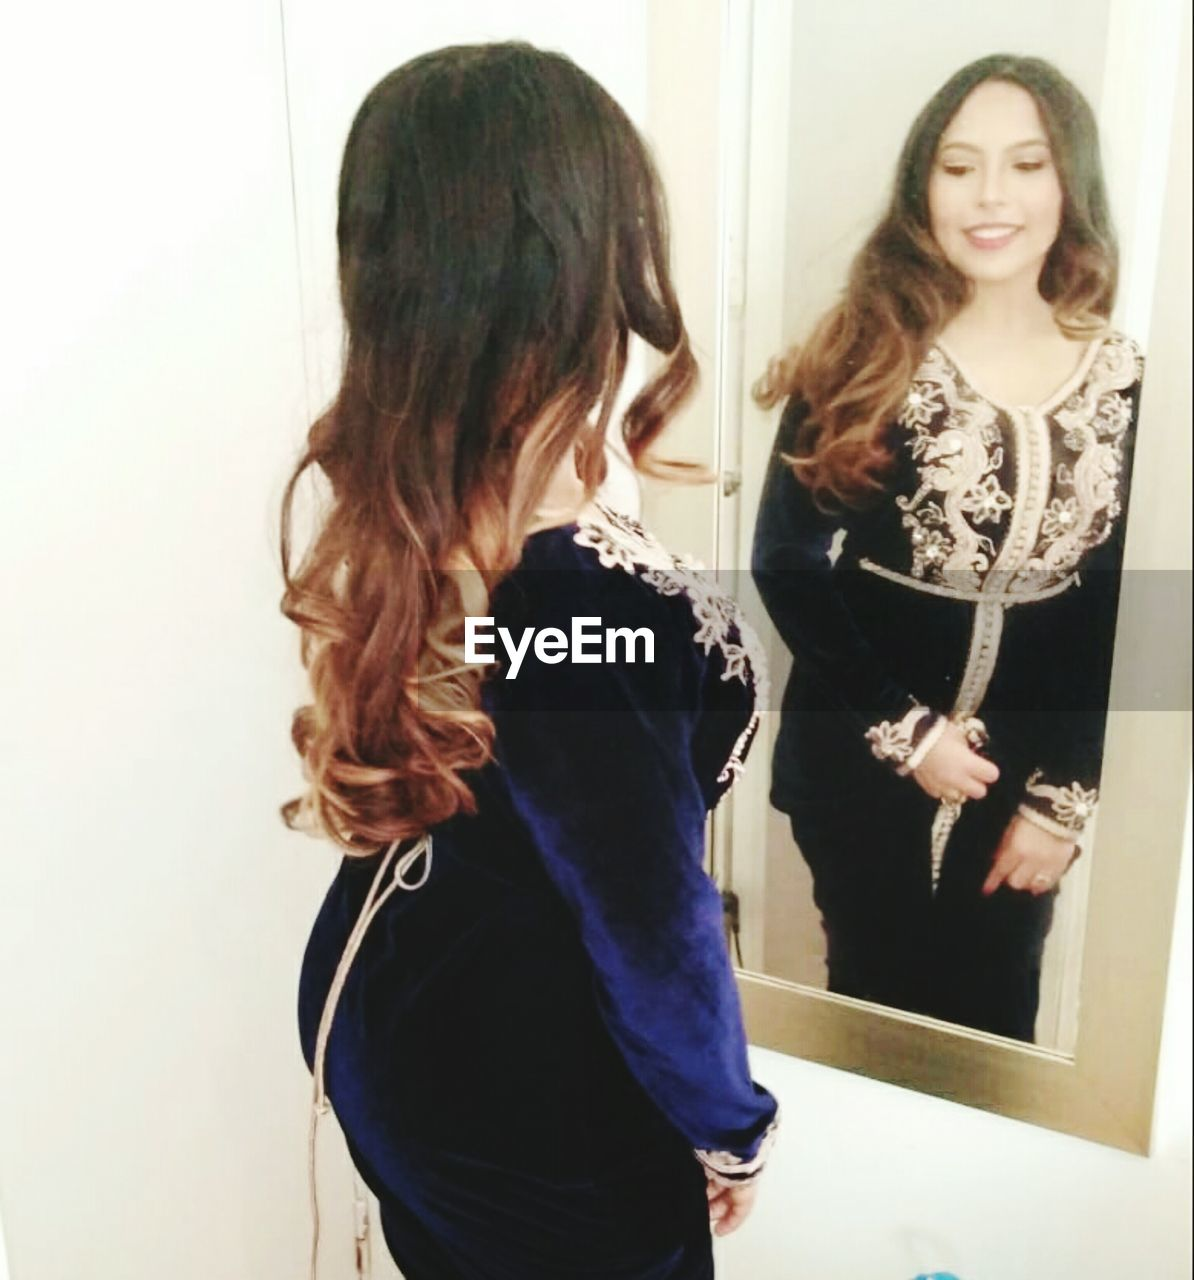 REAR VIEW OF WOMAN STANDING IN FRONT OF A YOUNG WOMEN